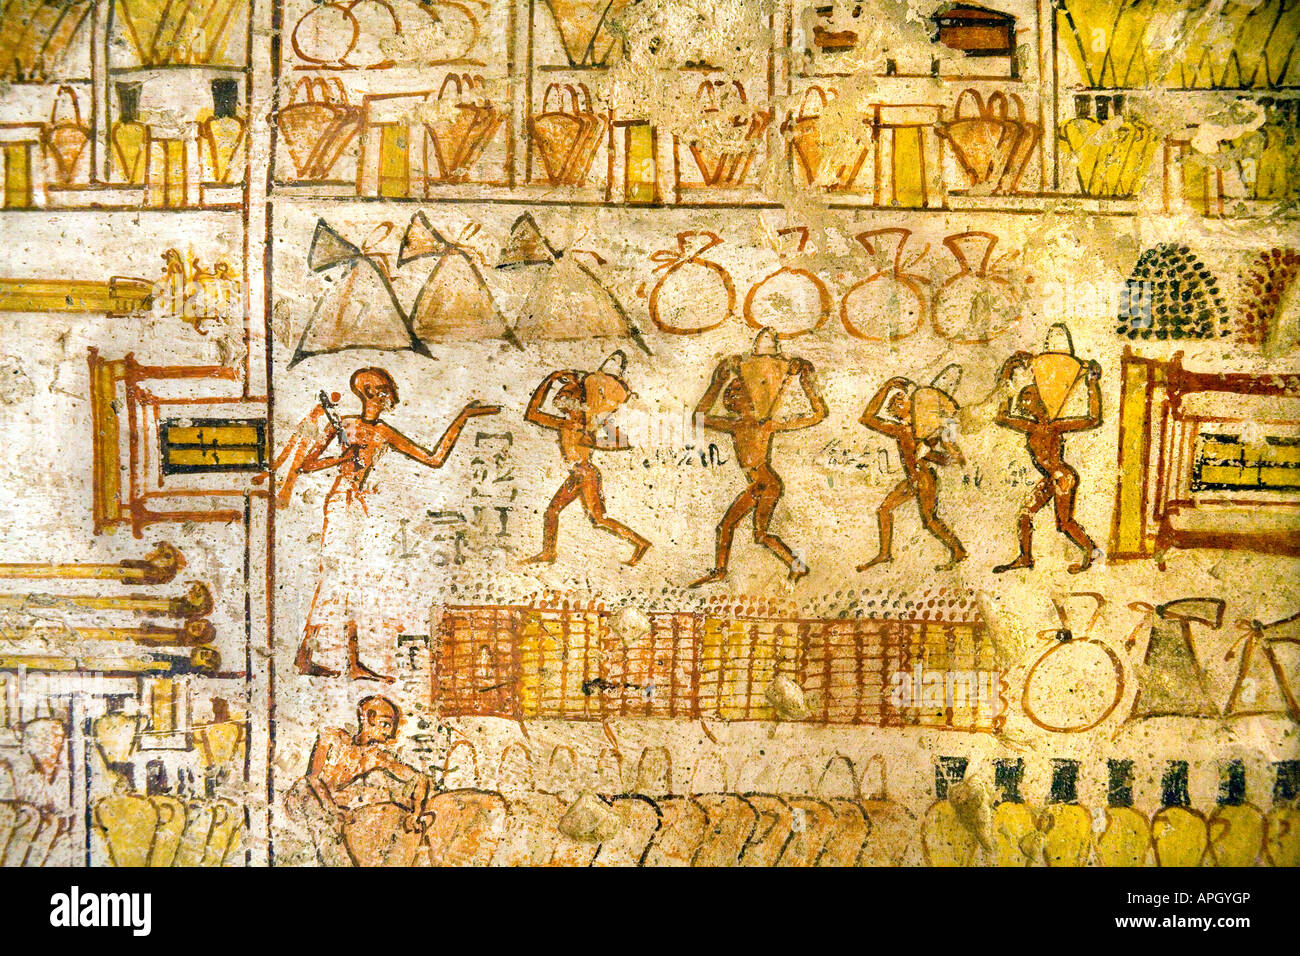 egyptian wall painting tomb stockfotos egyptian wall painting tomb bilder alamy. Black Bedroom Furniture Sets. Home Design Ideas